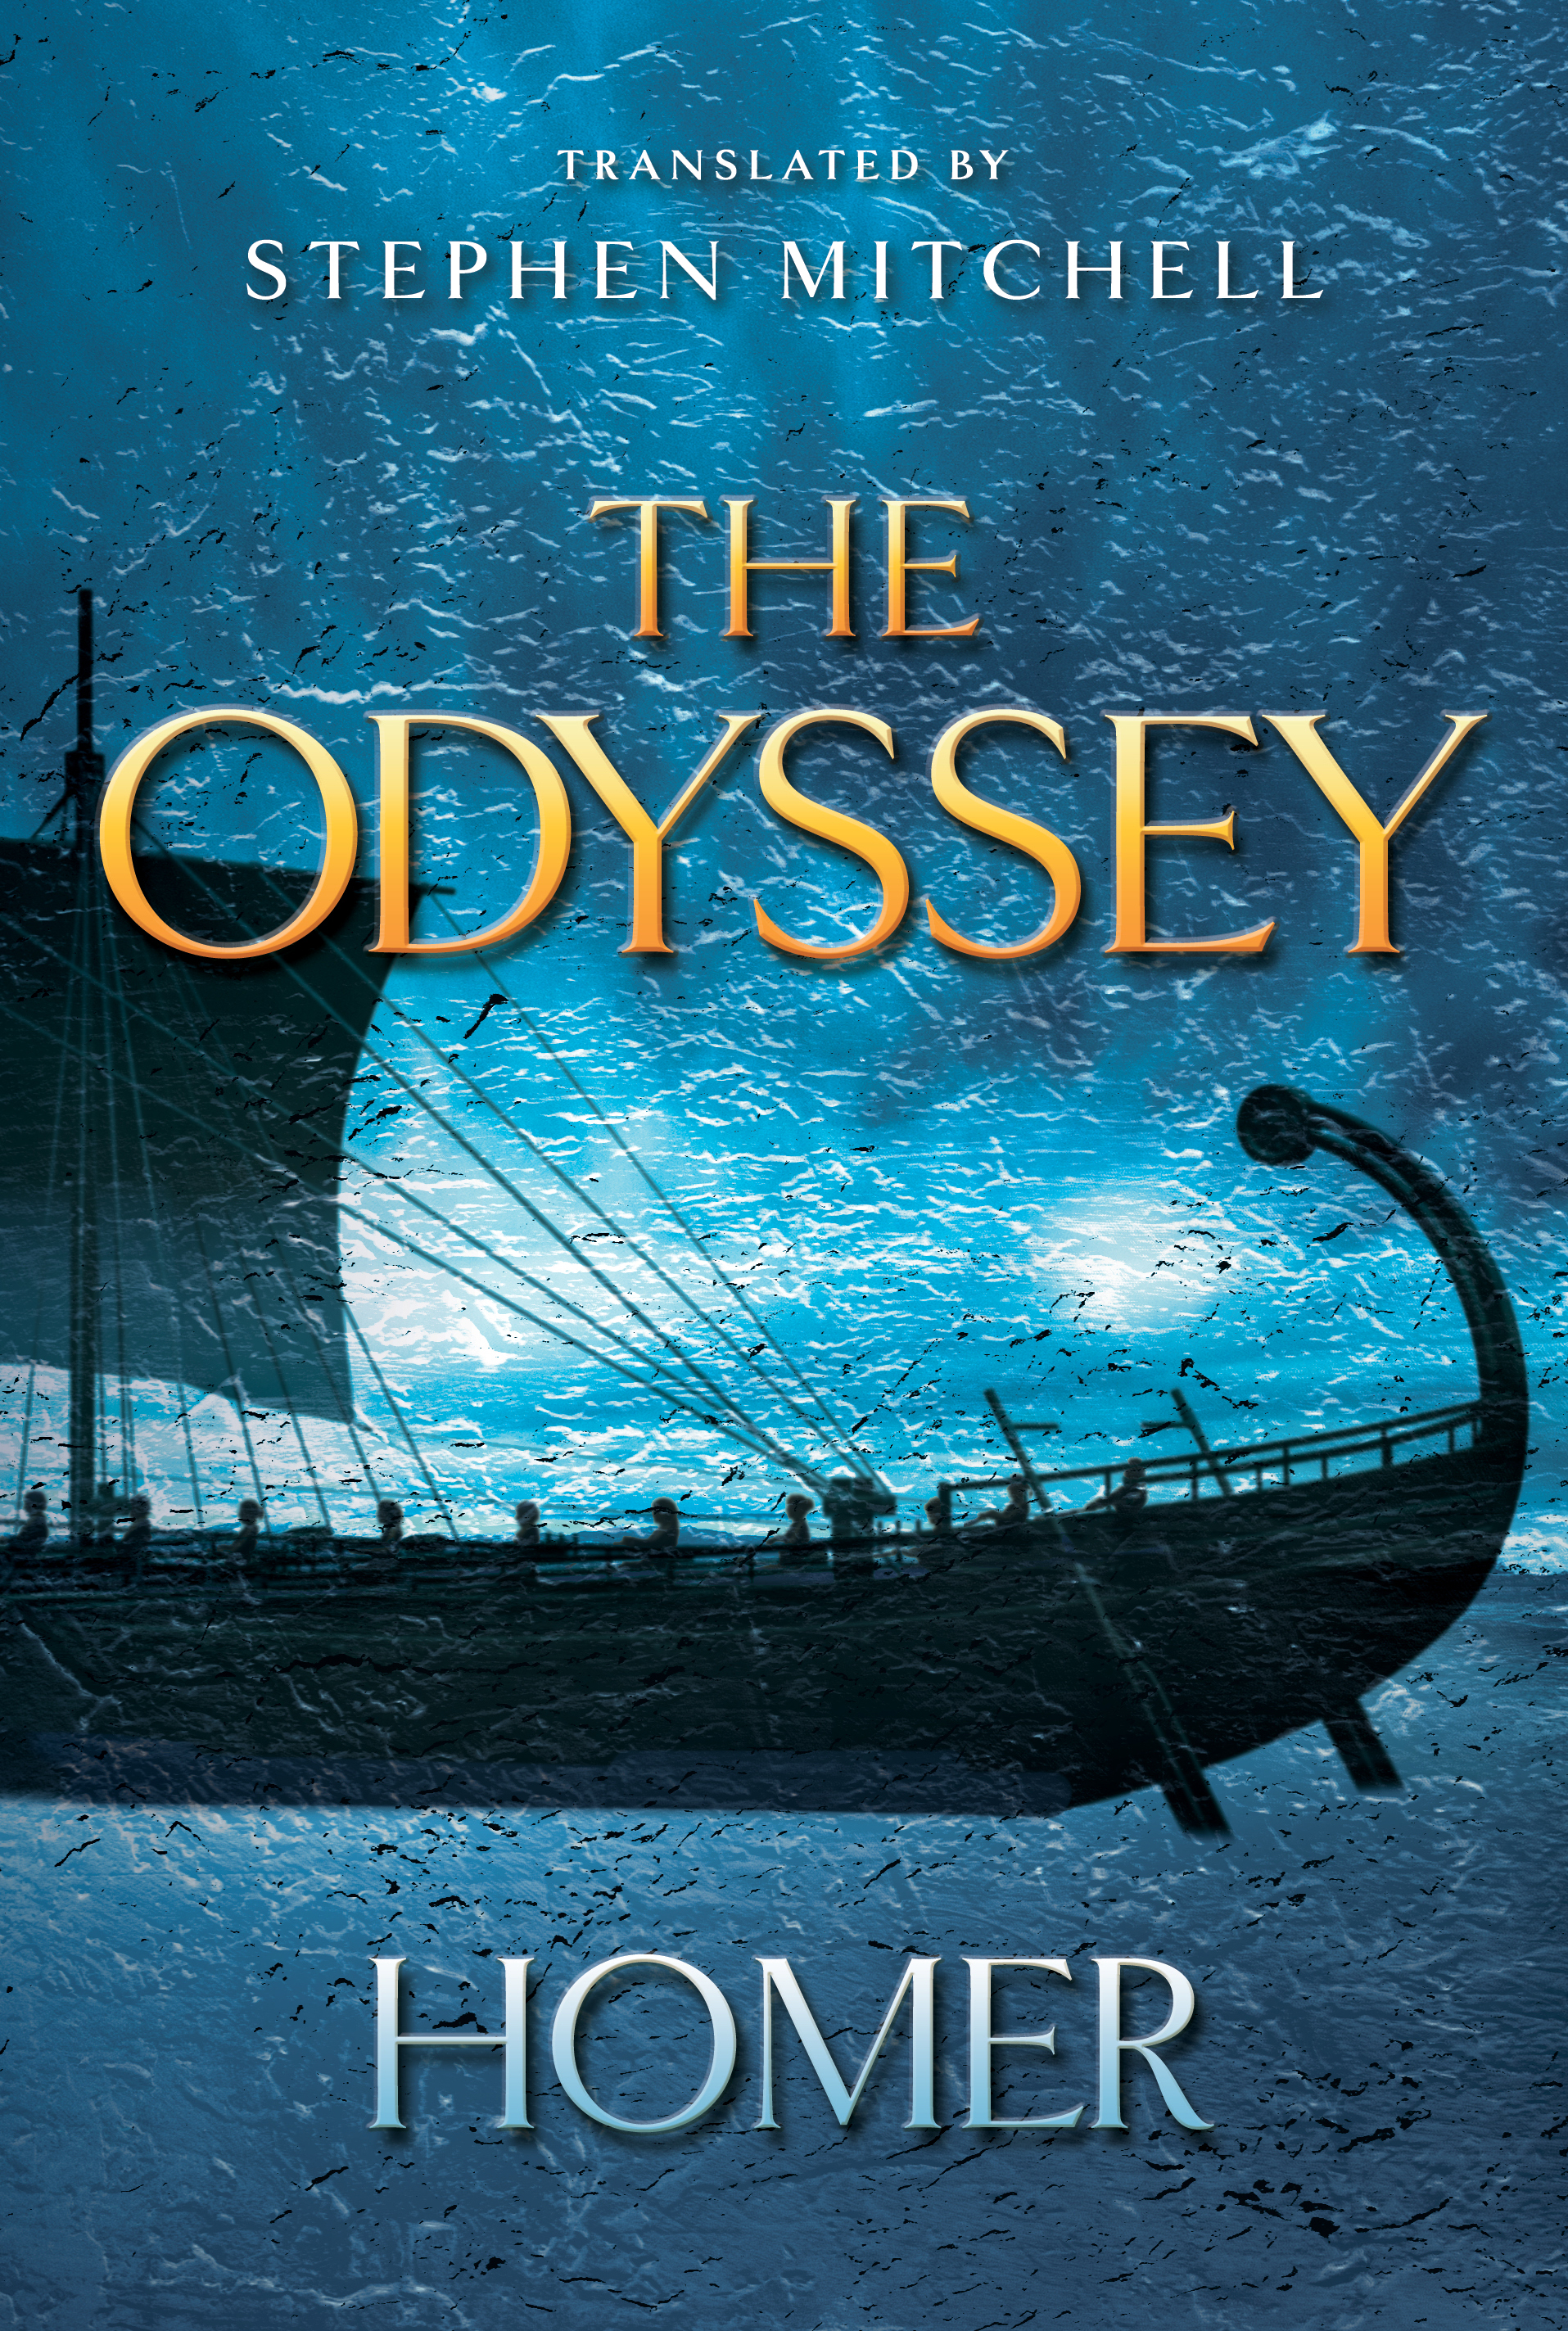 the odyssey an epic Introduction after an invocation to the muse of poetry, the epic begins in medias res (in the middle of things) odysseus has been gone from ithaca for abou.